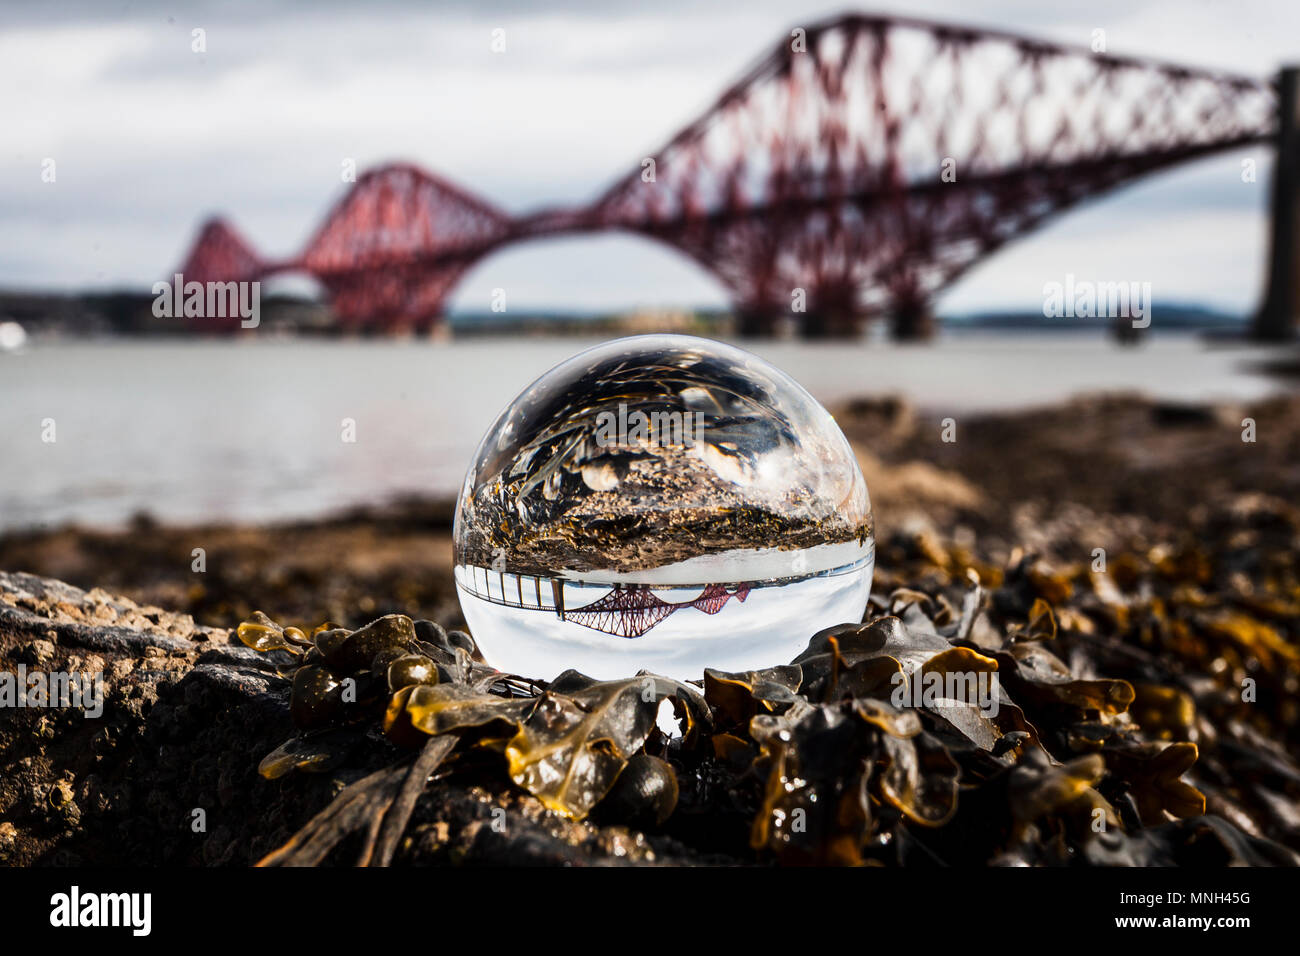 The Forth Bridge, Scotland viewed through a Lensball sat on seaweed on the beach at South Queensferry Stock Photo